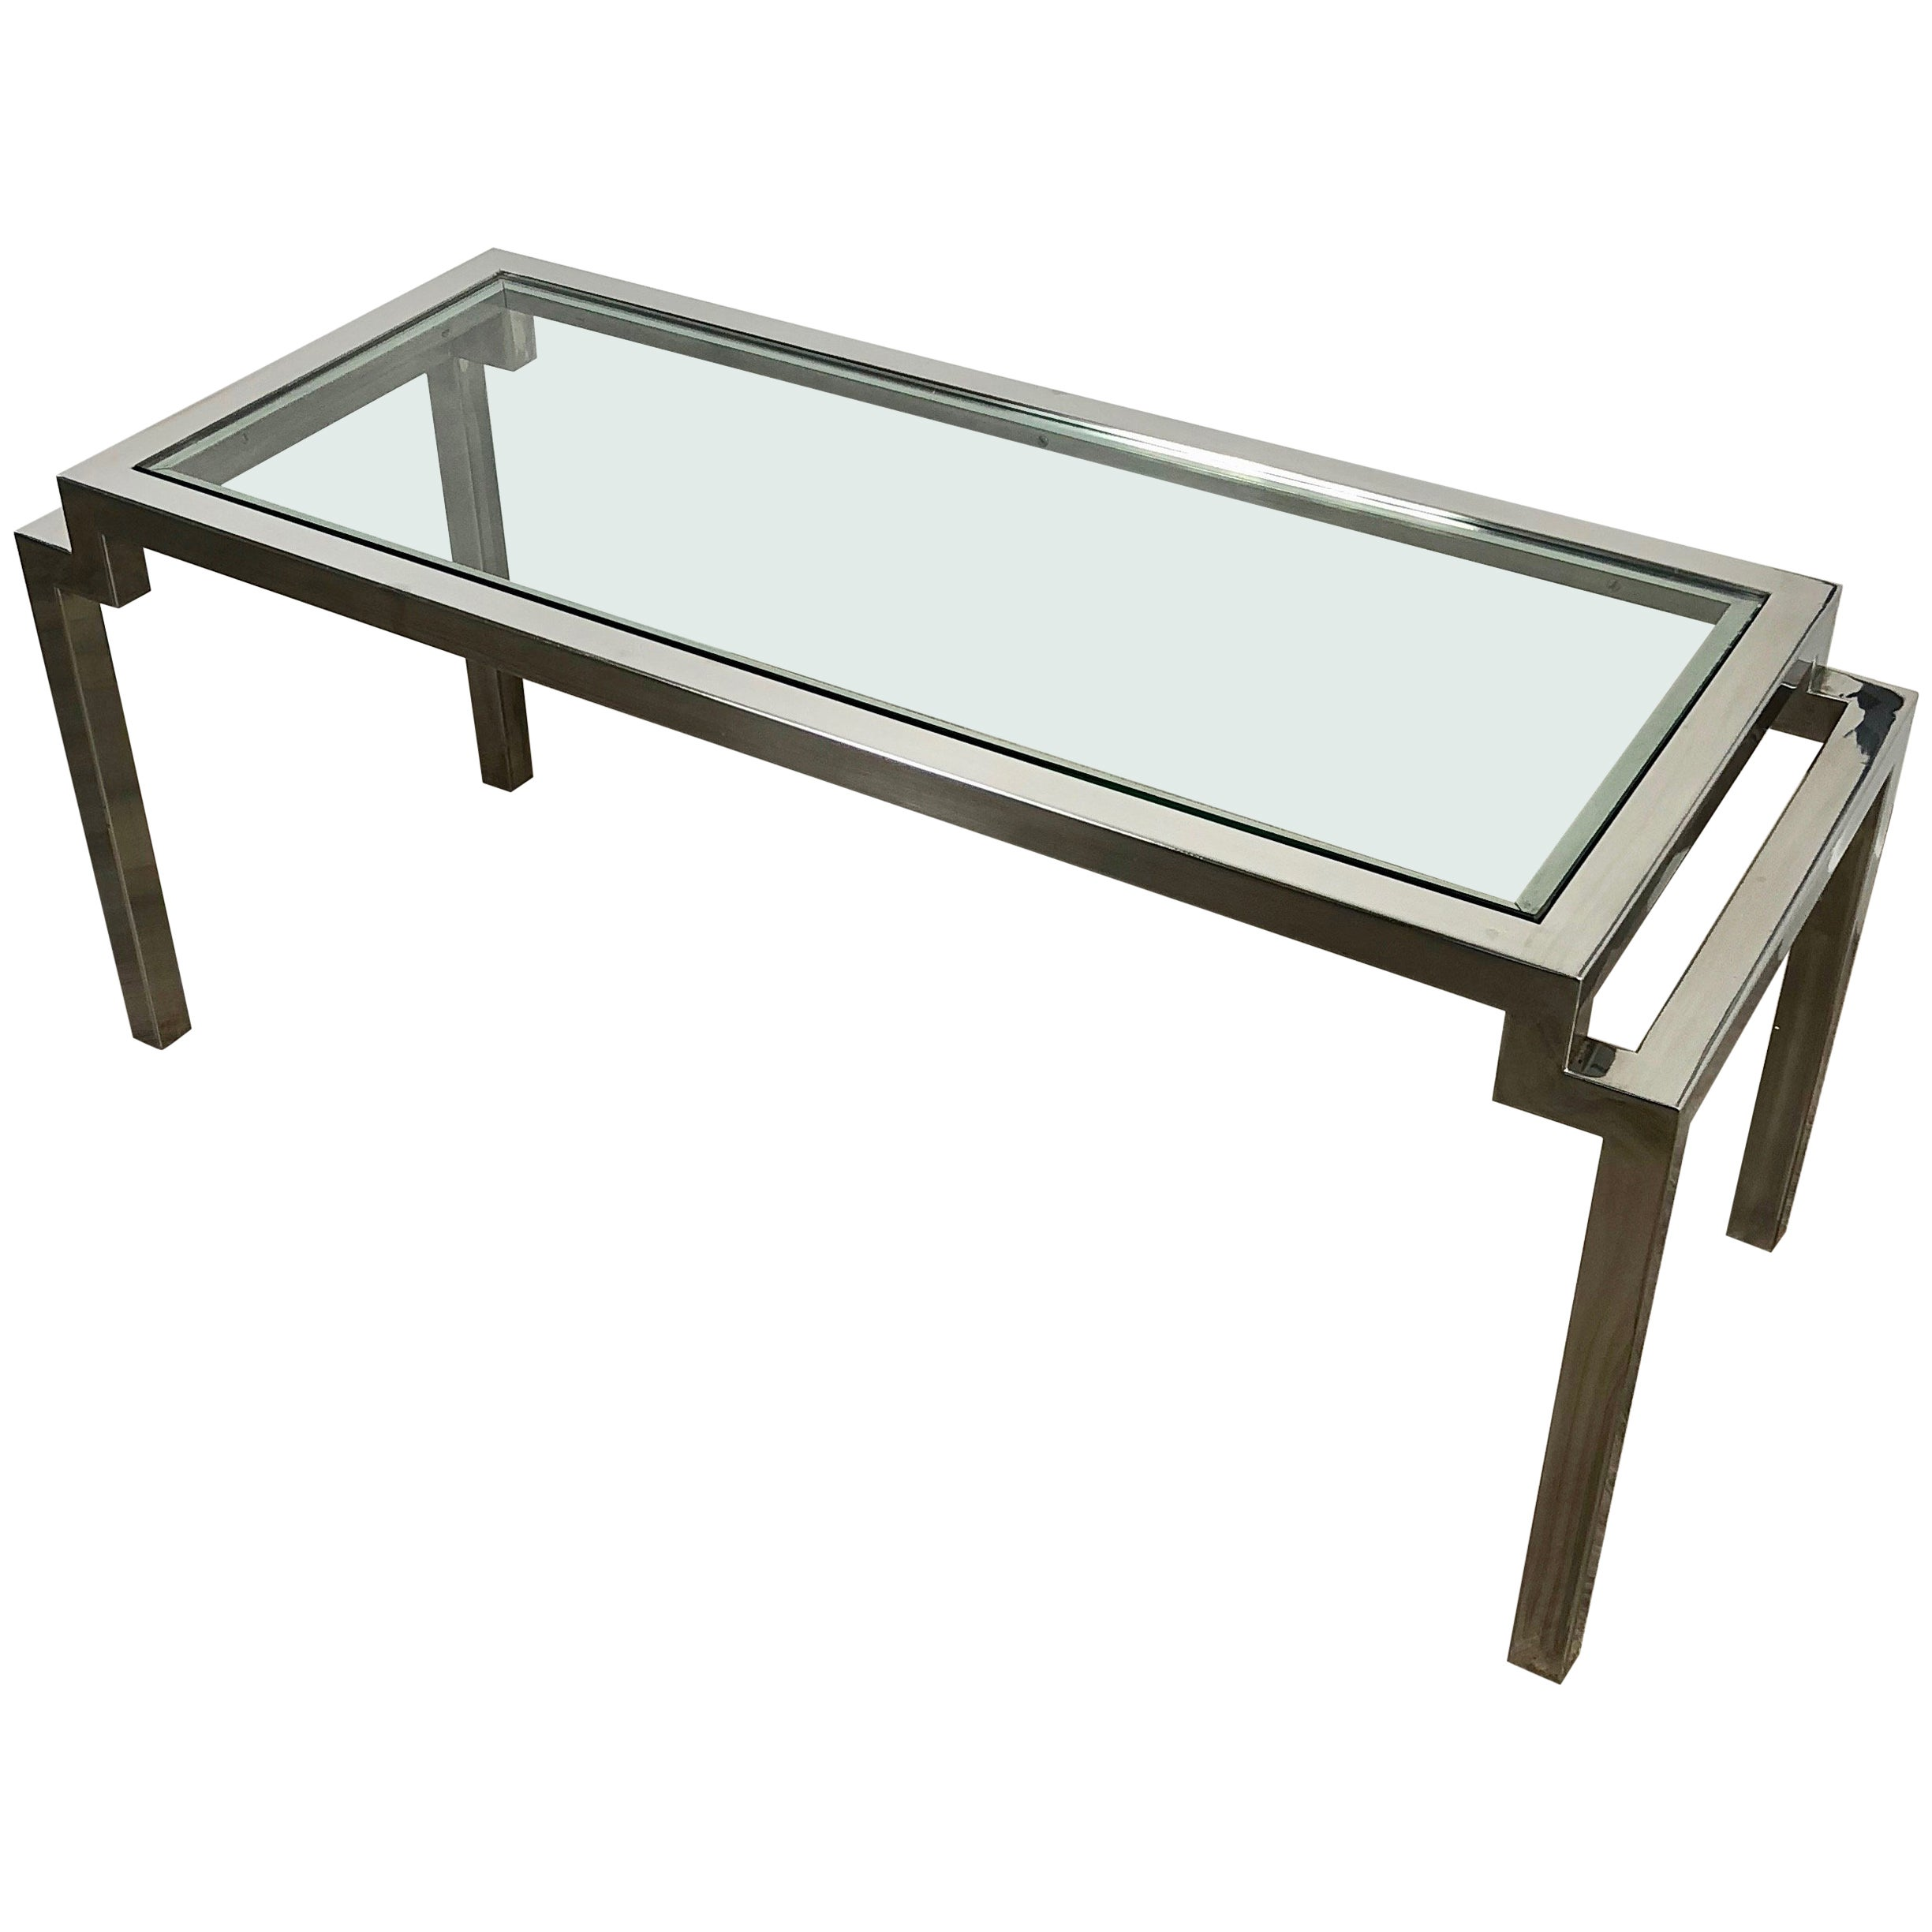 Coffee Table in Chrome and Glass 1970s Modern, Italy